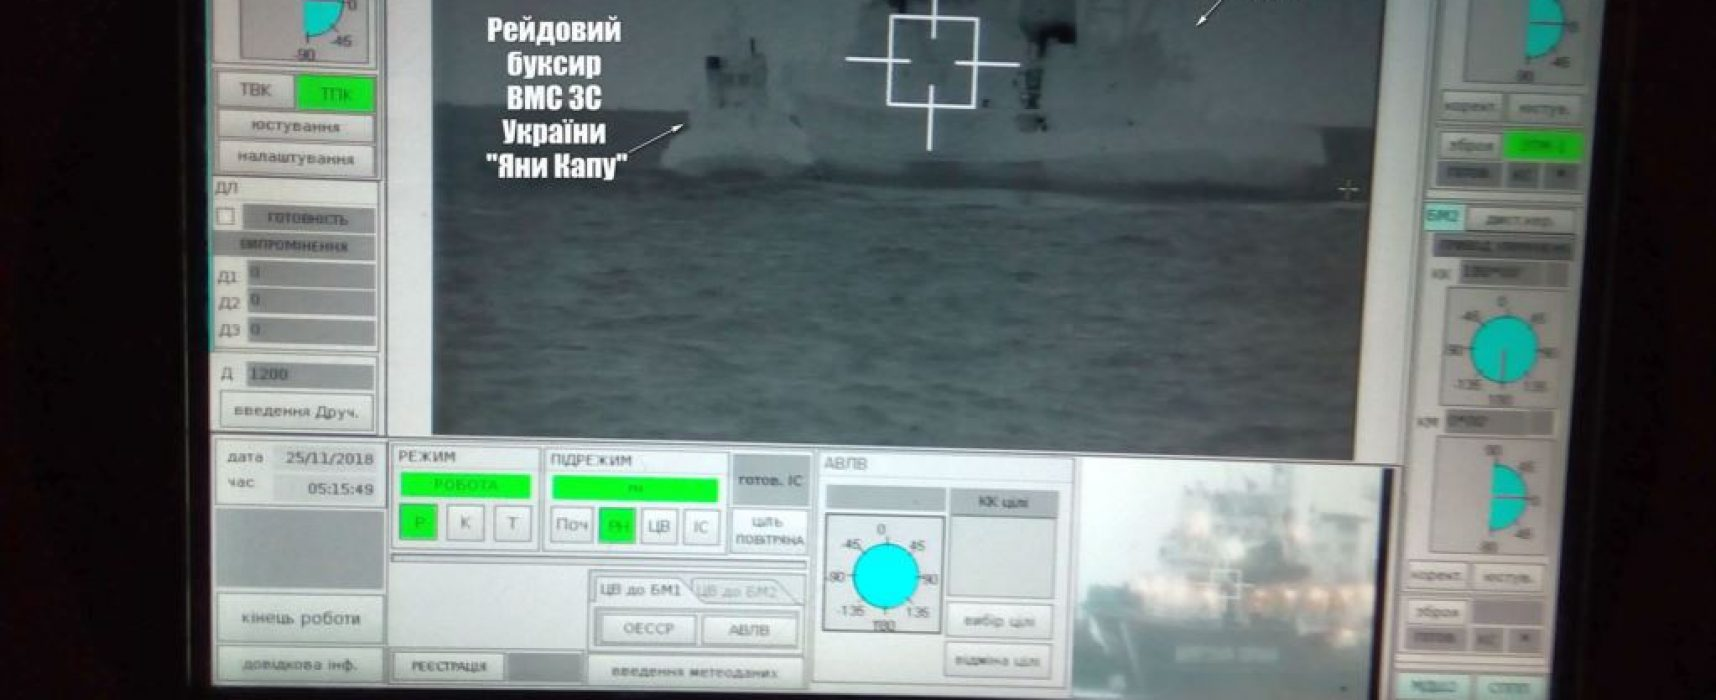 Russian coast guard rams Ukrainian tugboat, official denies ramming is 'a tactic'